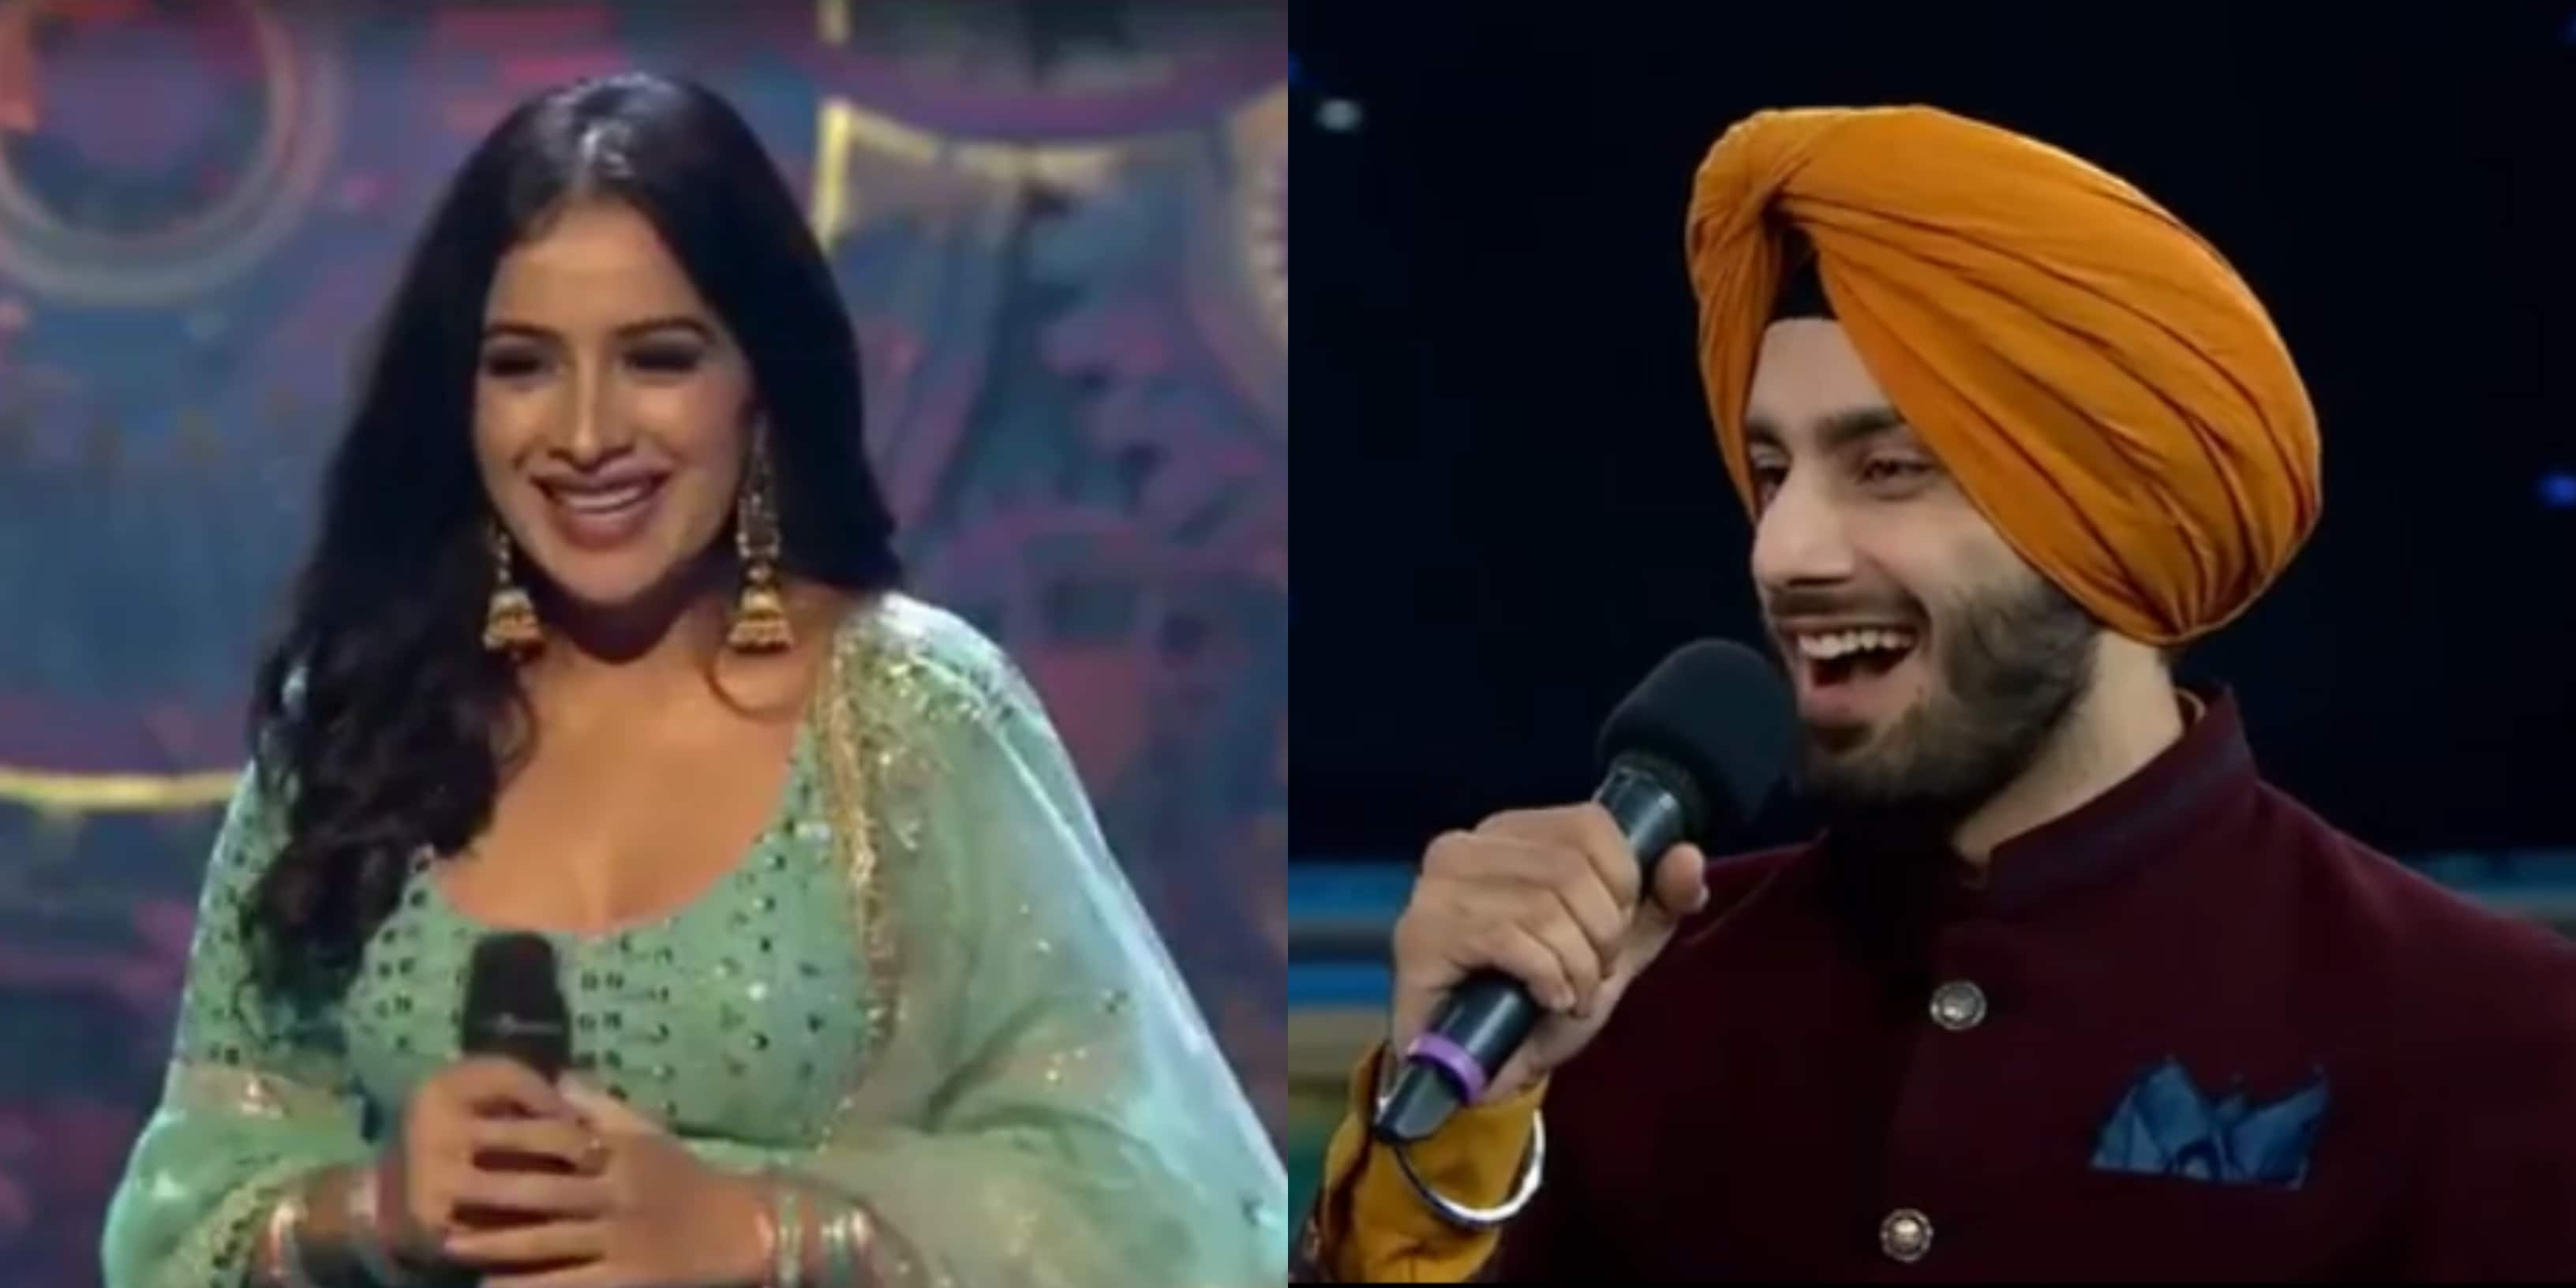 Exclusive: Shehzad Deol Says Bigg Boss 14 Can Forget Support From Punjab Viewers After Sara And His Eviction